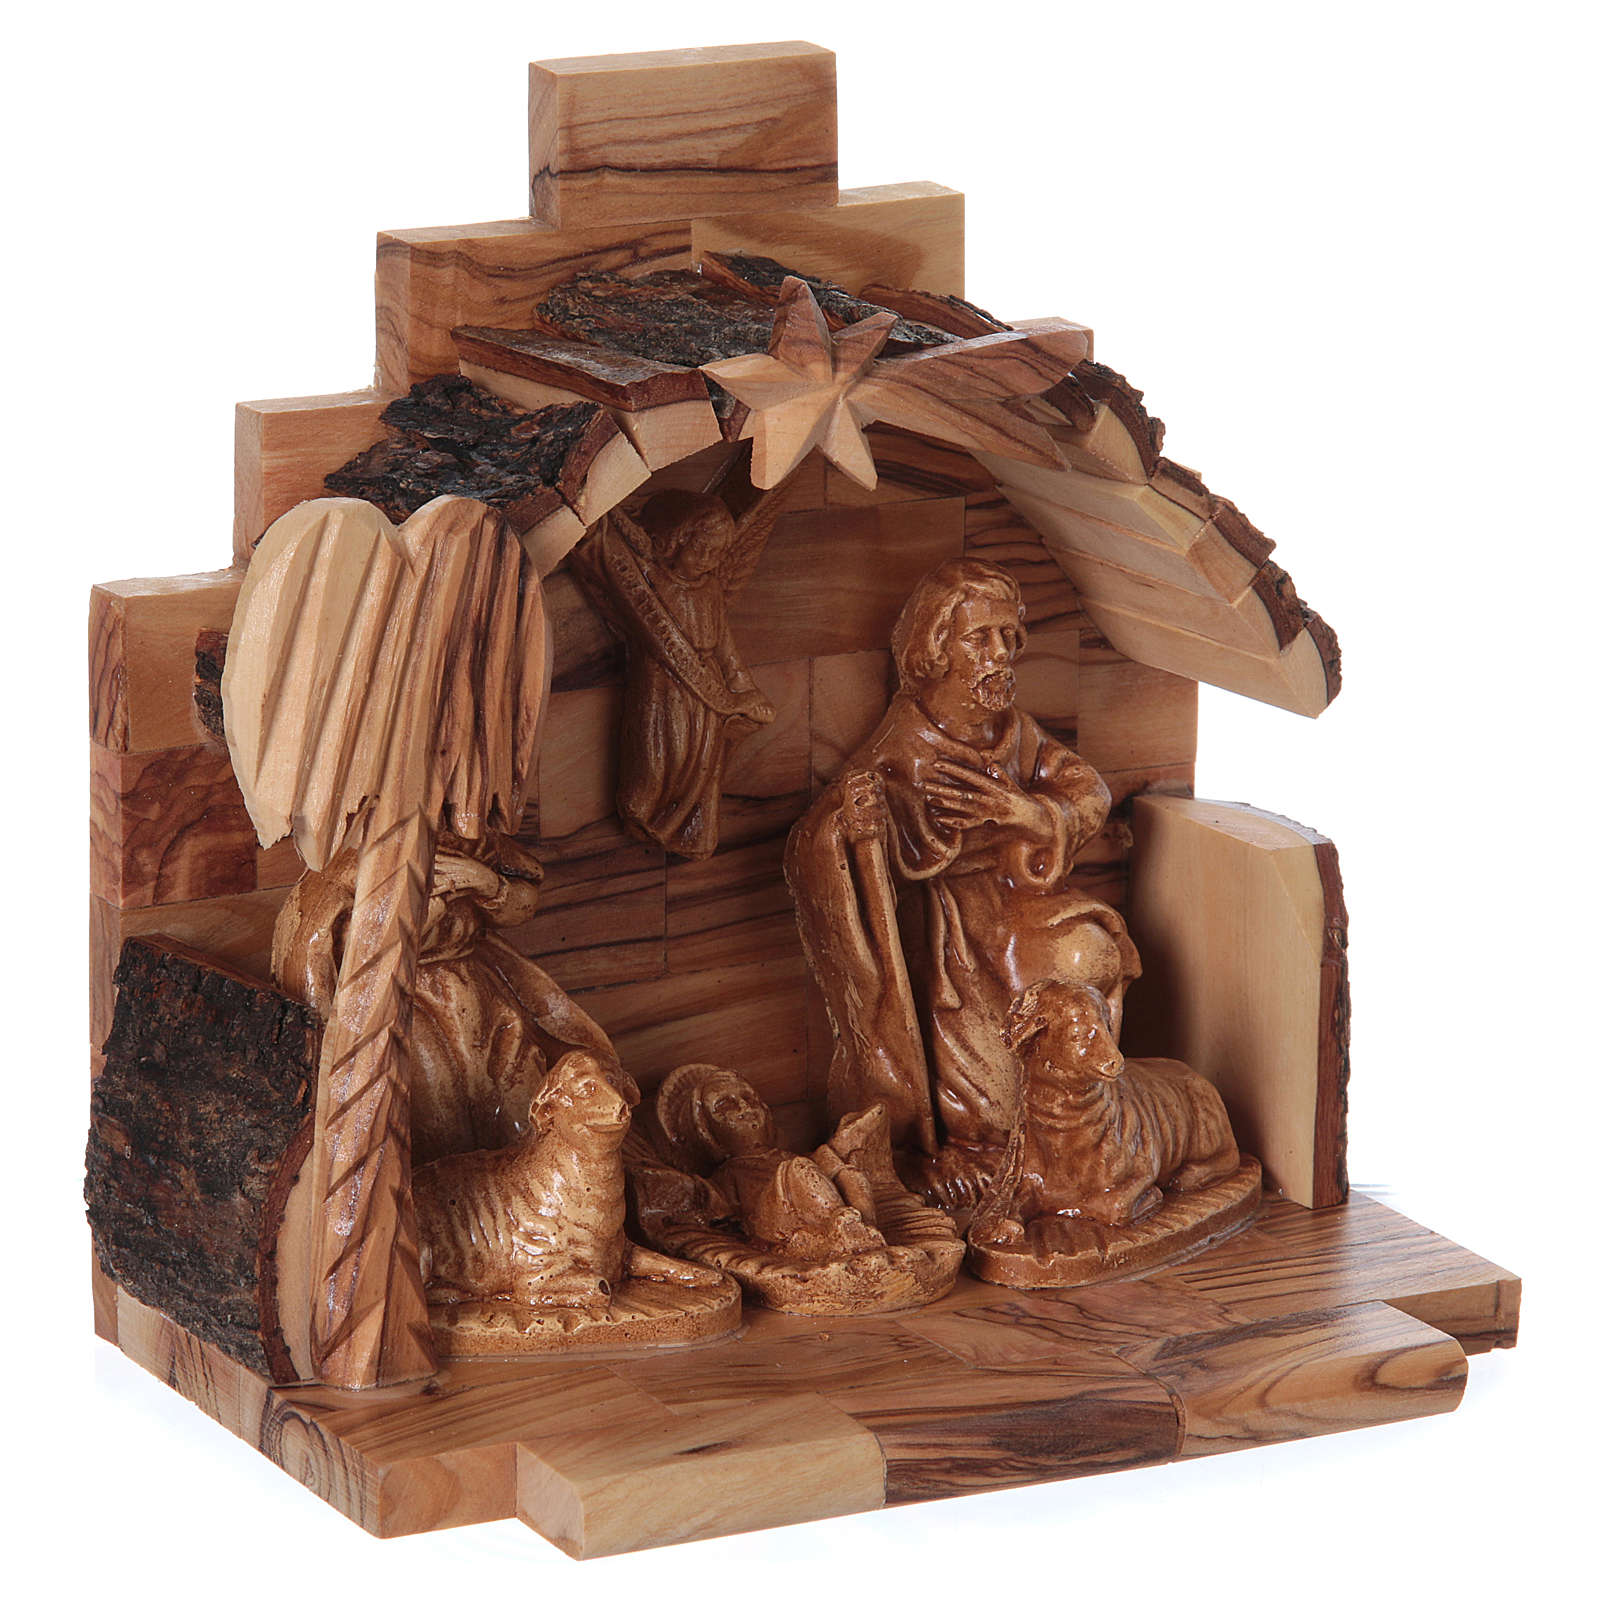 Nativity with shack in Bethlehem olive wood 15x15x10 cm 4